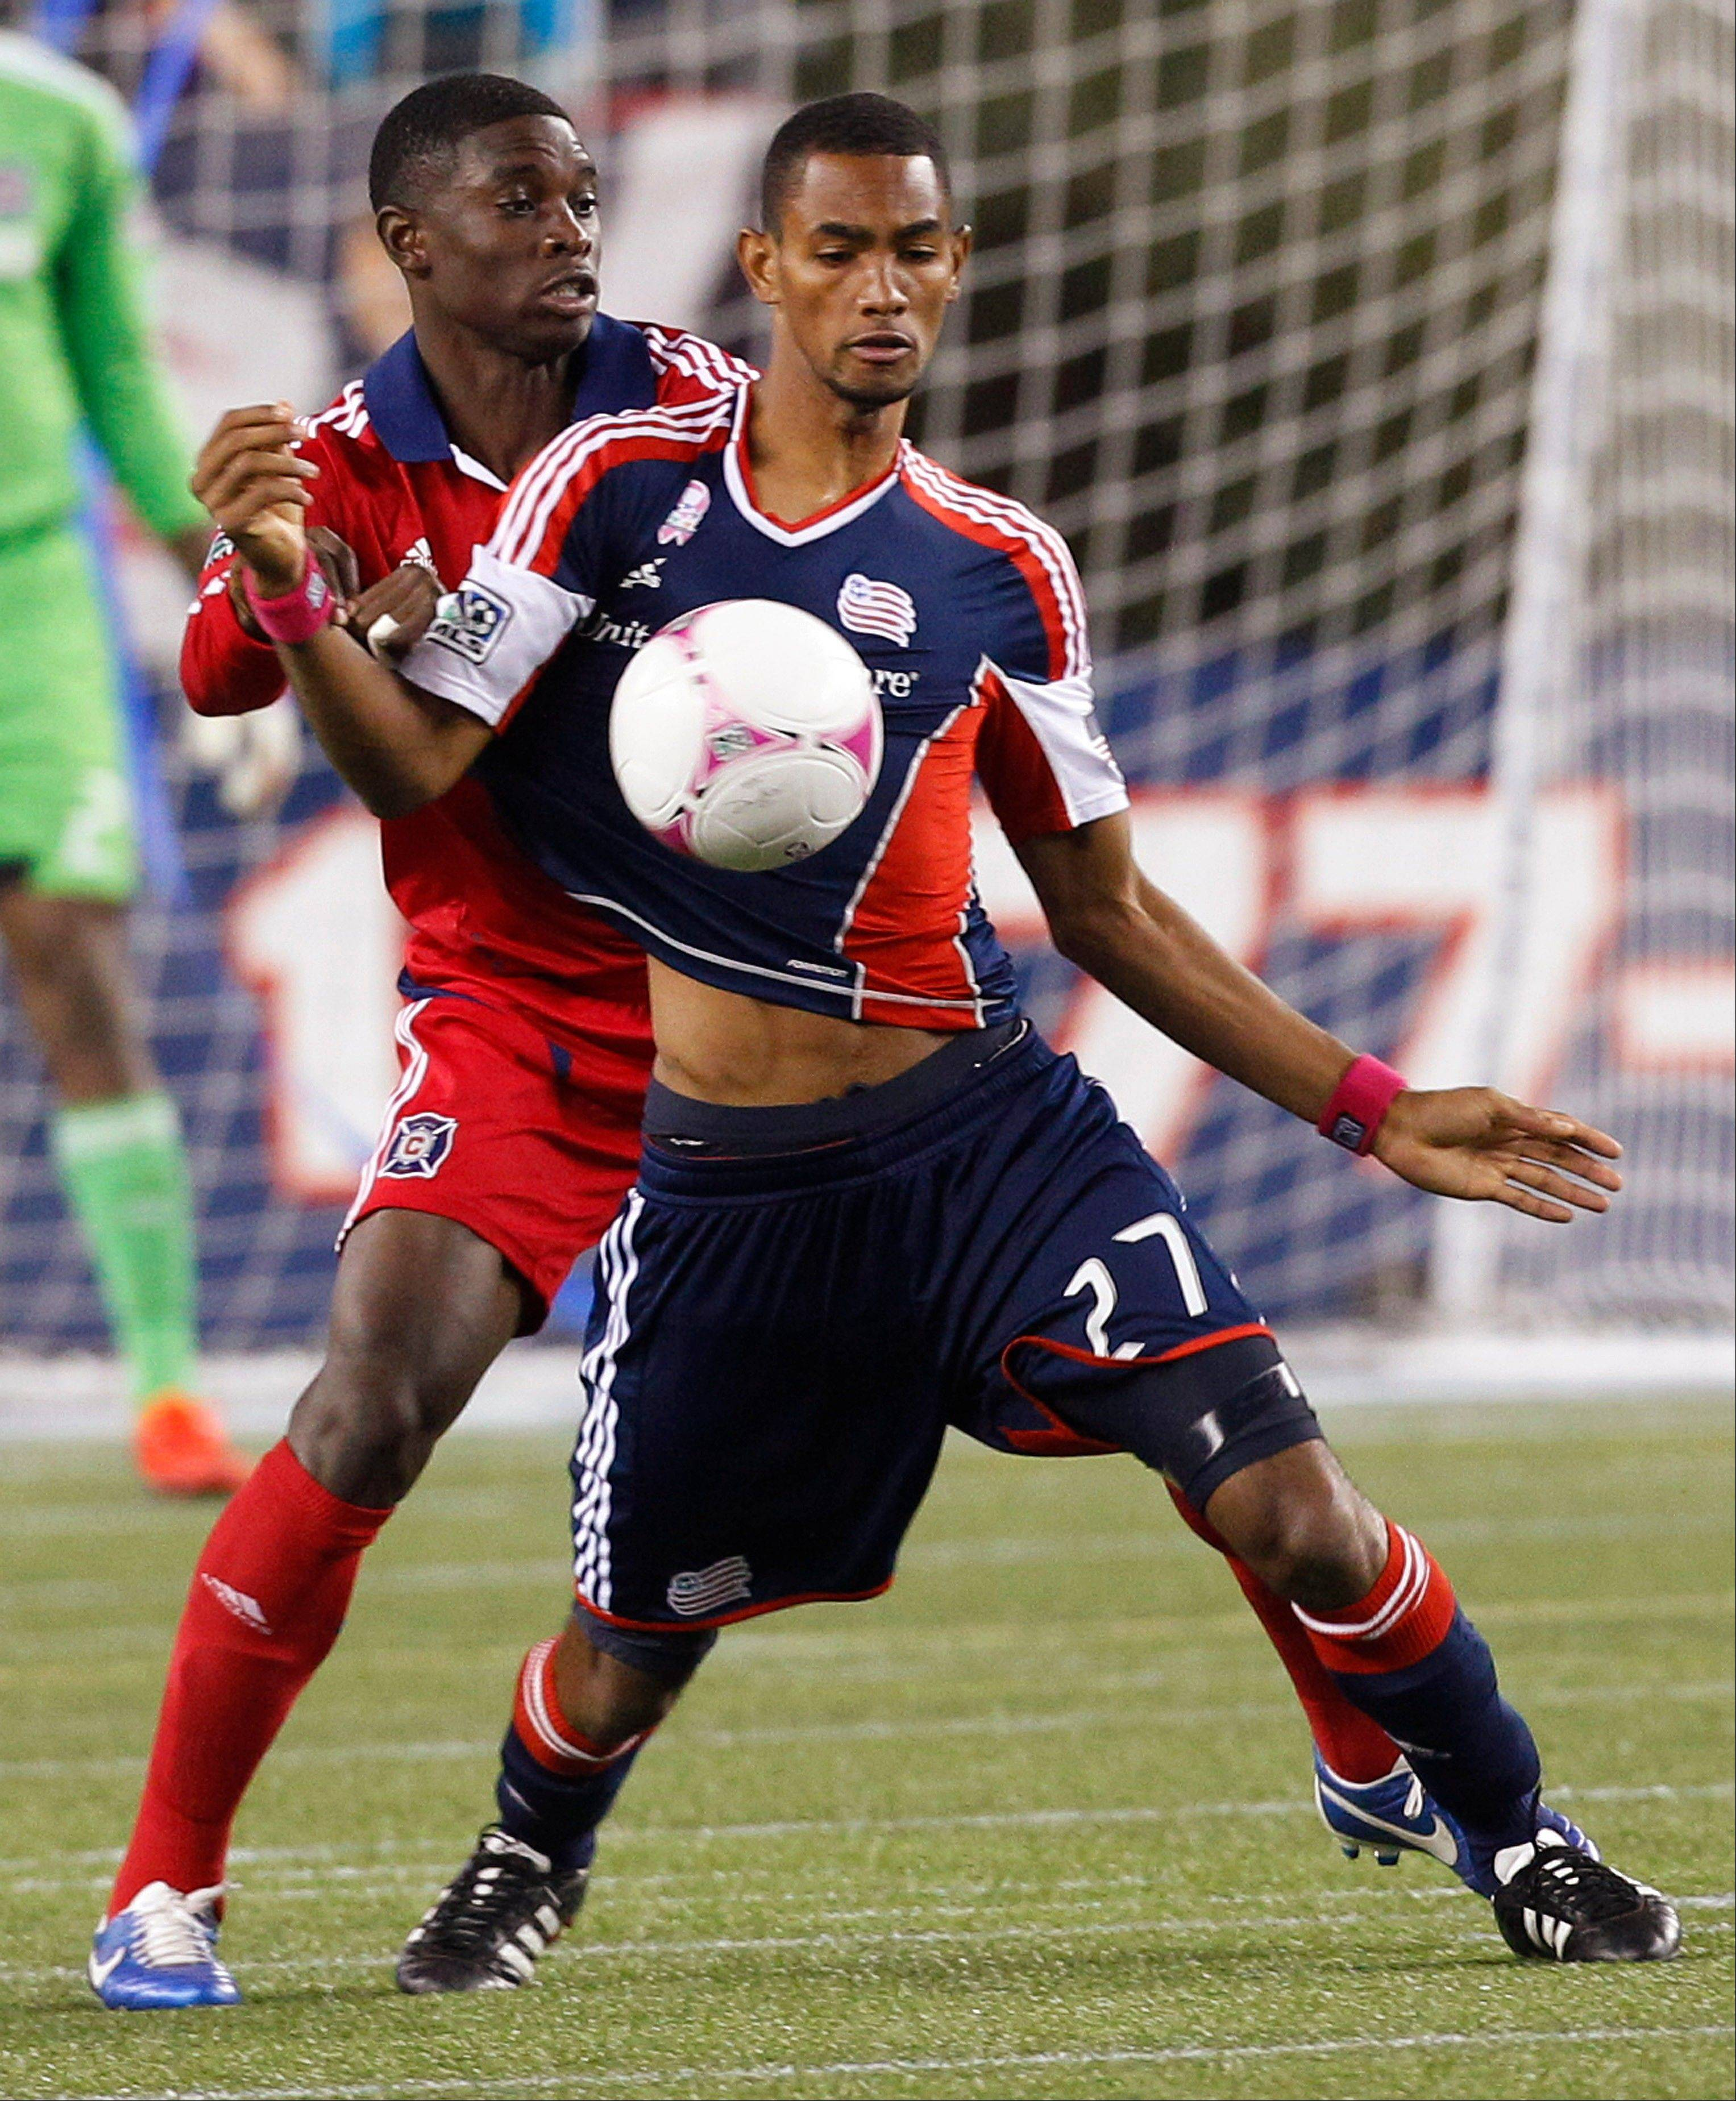 Jalil Anibaba (6) is competing for the starting right back spot in preseason training with the Chicago Fire.